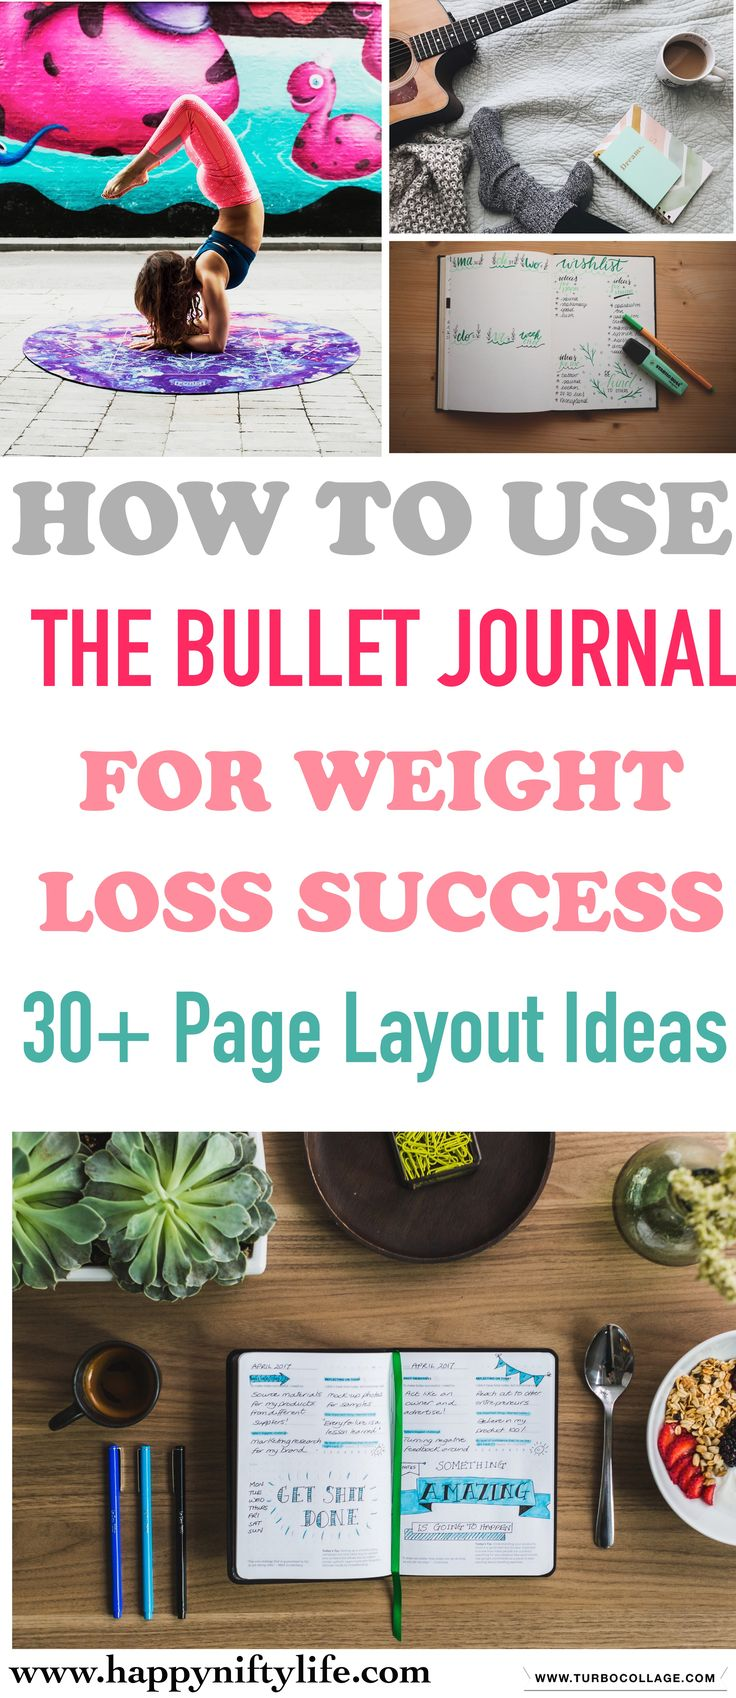 Looking for ways to plan and track your health and fitness in the bullet journal? Here are some inspiring and creative BuJo page layout ideas to keep you motivated this year. Here you will find inspiration for creating exercise and food logs, weekly and monthly spreads to plan your workouts, and ideas for tracking weight and inches lost in the bullet journal. #bujo #bujojunkies #bulletjournal #bulletjournaling #bulletjournaljunkies #weightloss #healthyeating #healthylifestyle #fitness